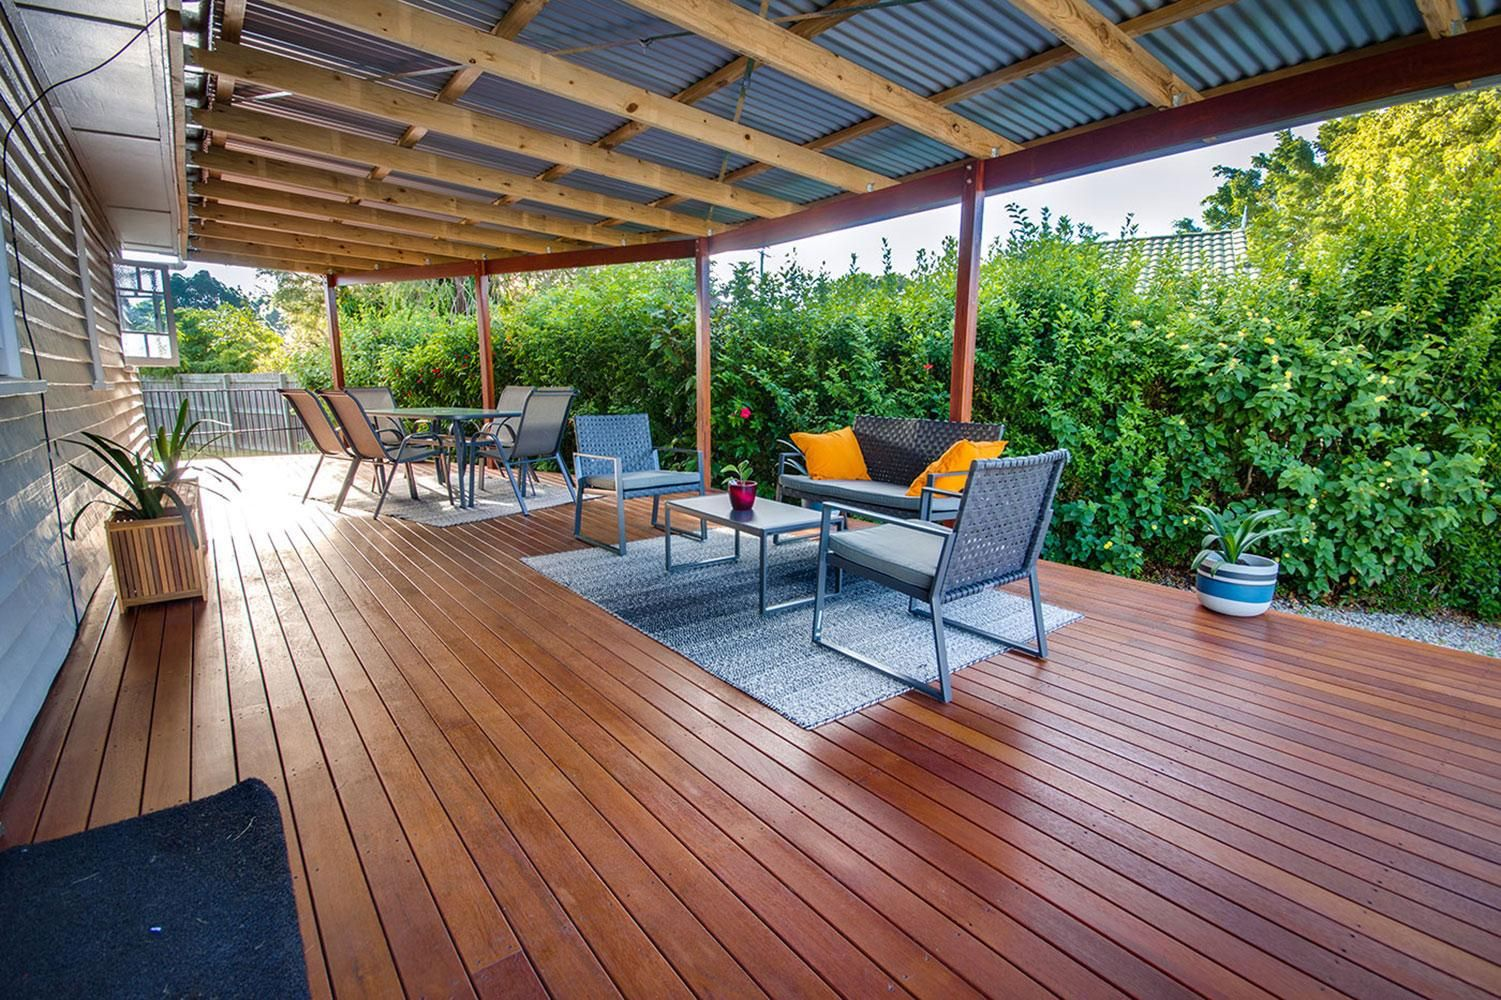 Pin by DeKing Decks Brisbane on Deck - Patio Combinations ...